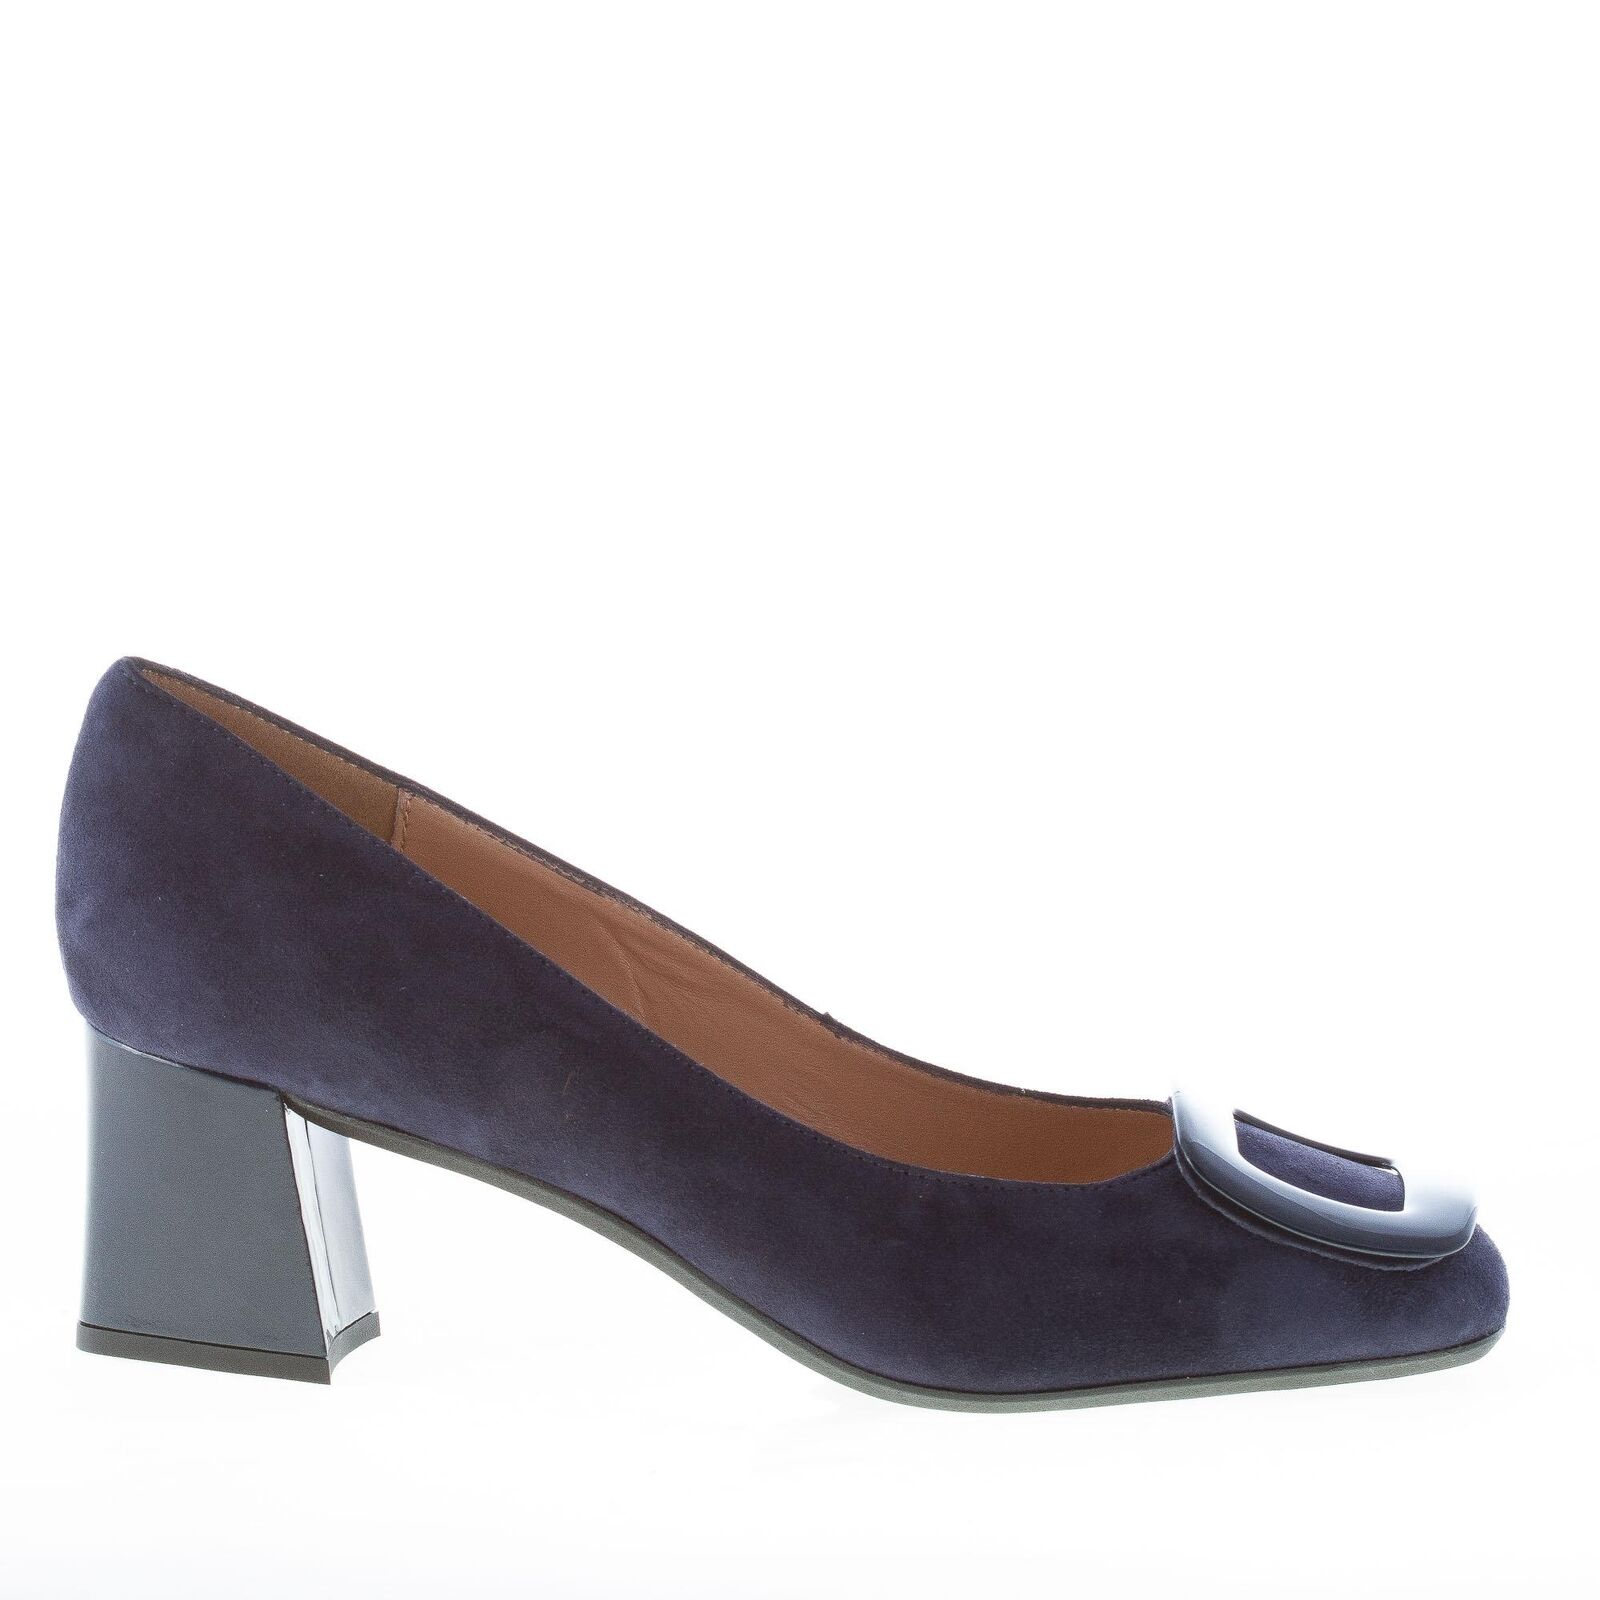 IL BORGO FIRENZE scarpe donna women blu shoes Decolletè in camoscio blu women con fibbia 90a7c9